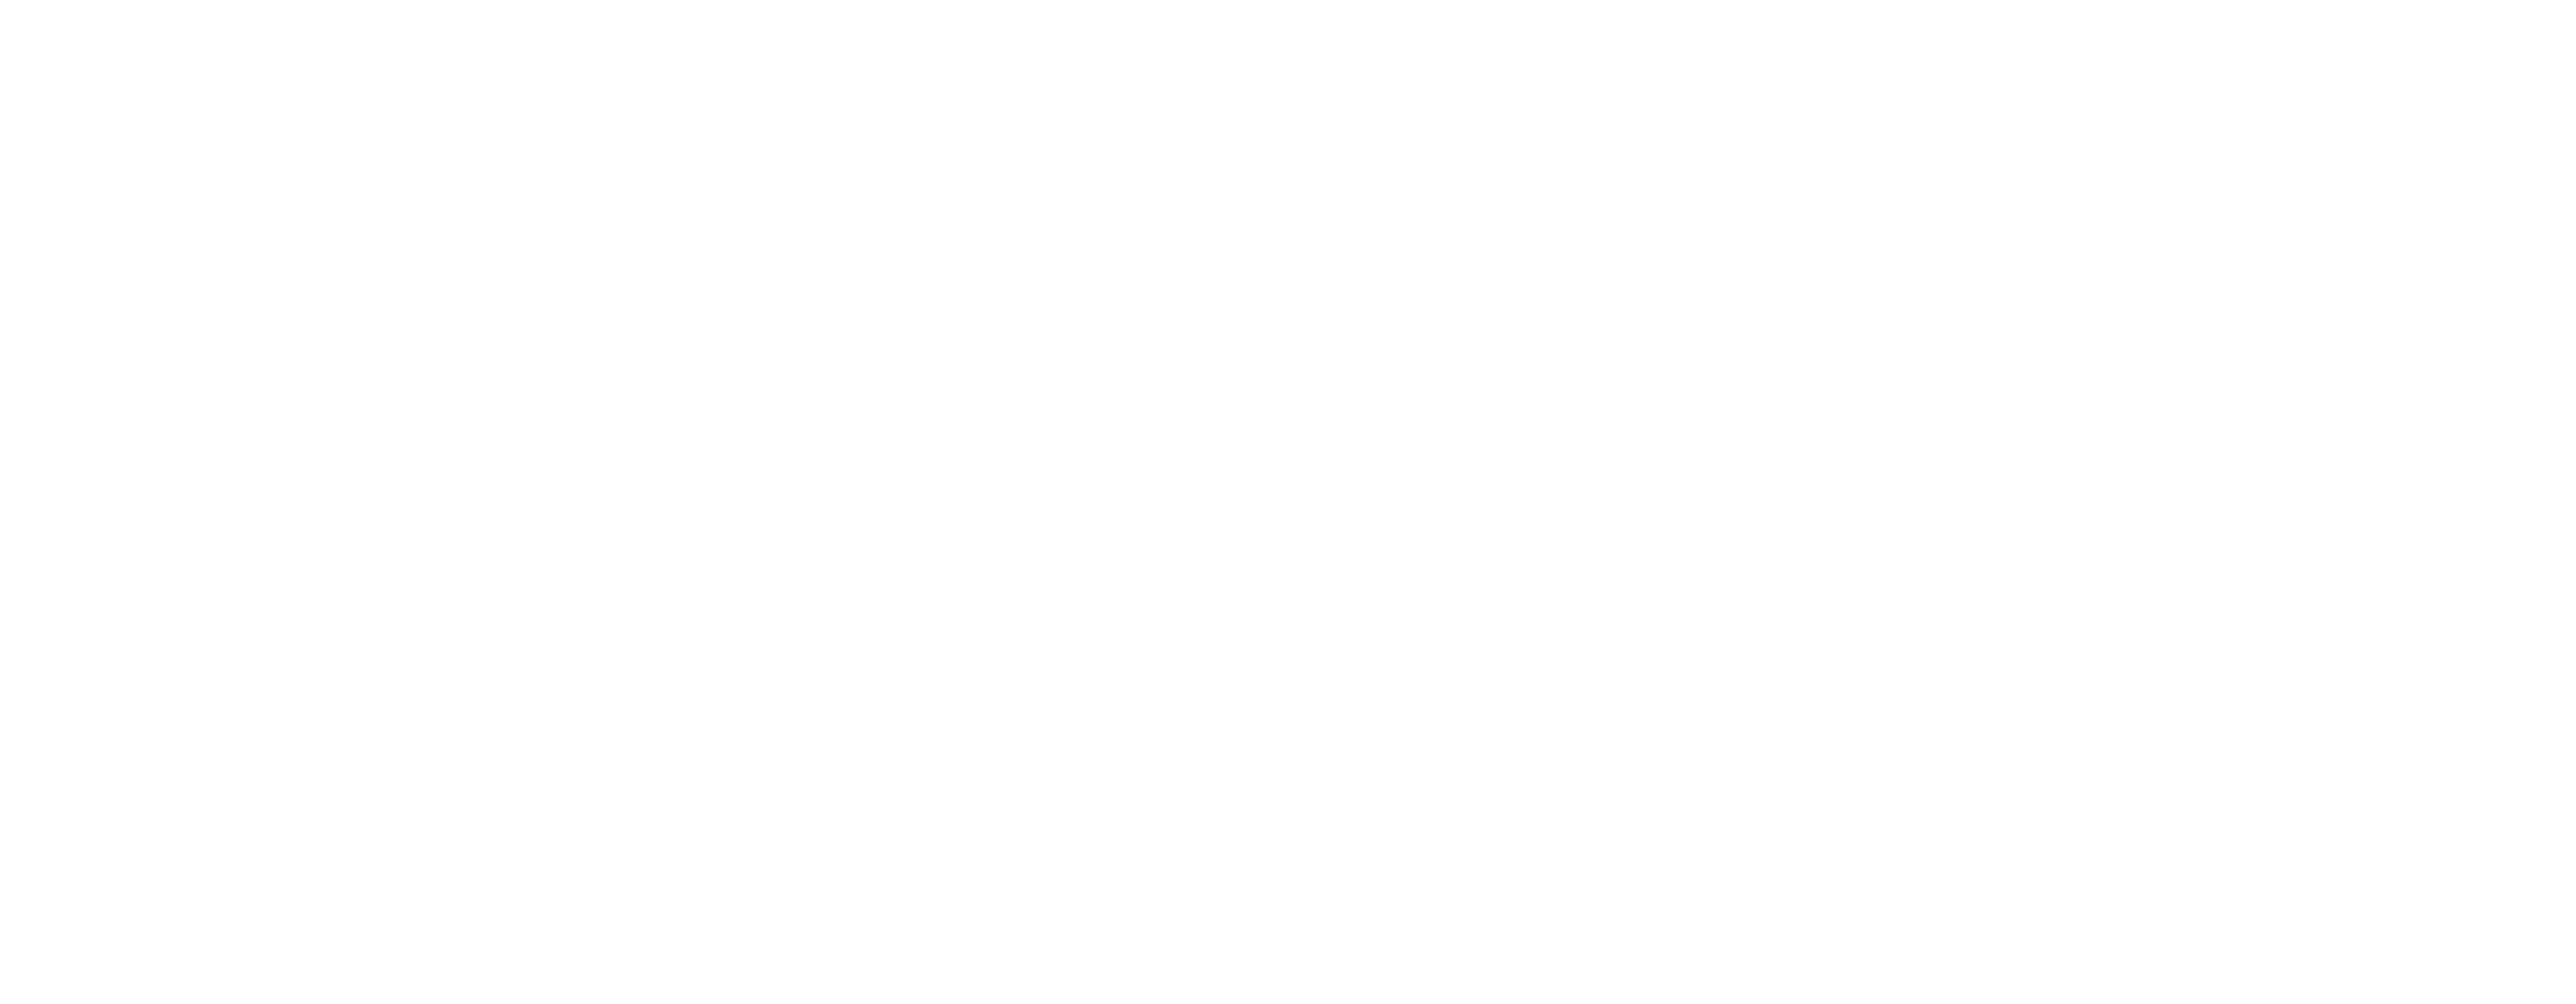 Merrick Flower Shoppe - Flower Delivery in Merrick, NY